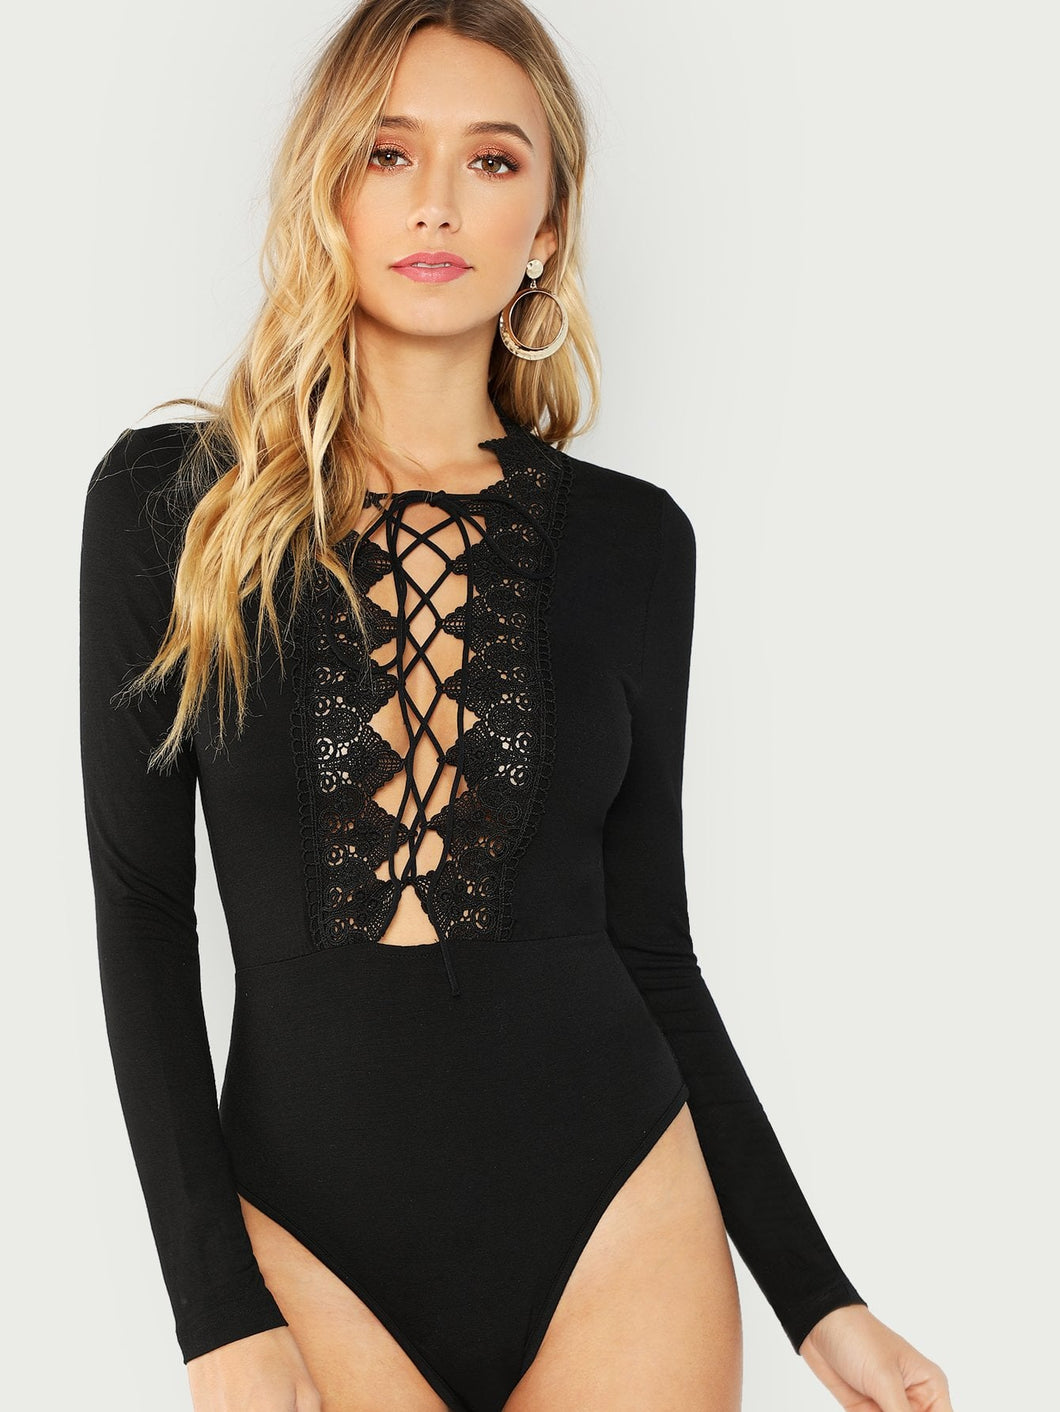 Lace Trim Tie Up Plunging Bodysuit